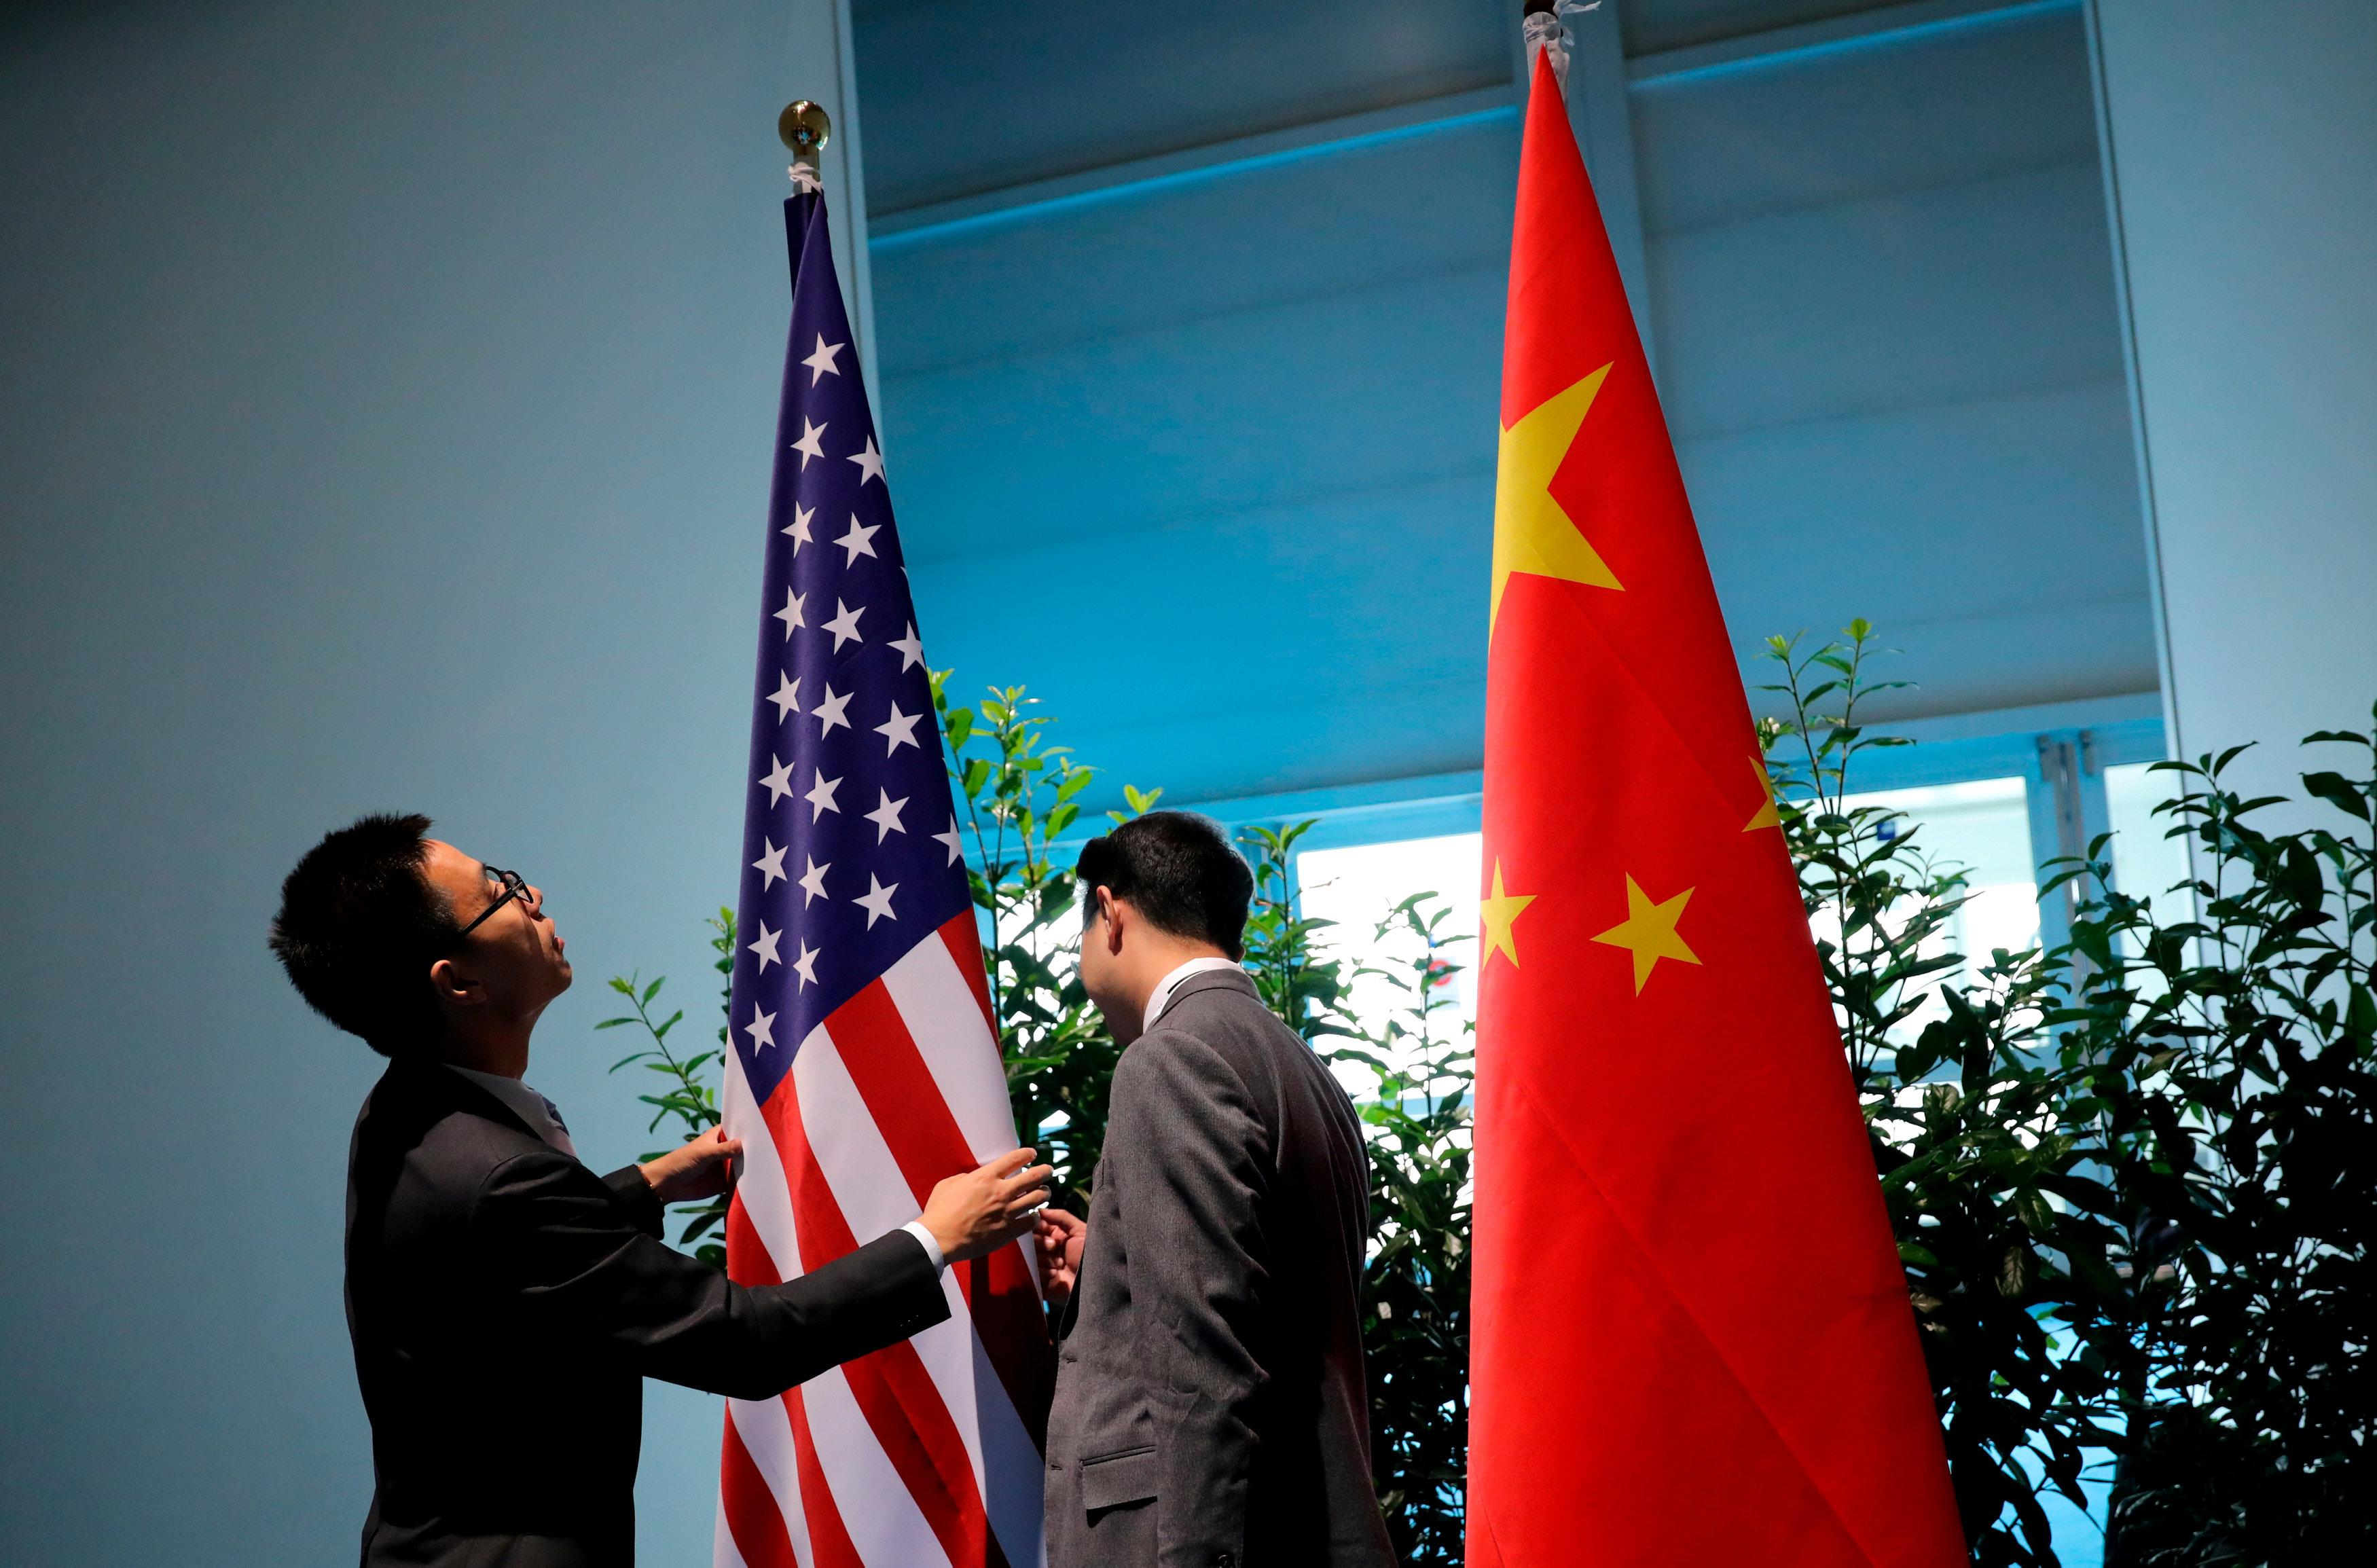 Morning Brief: China open to resuming trade talks with US